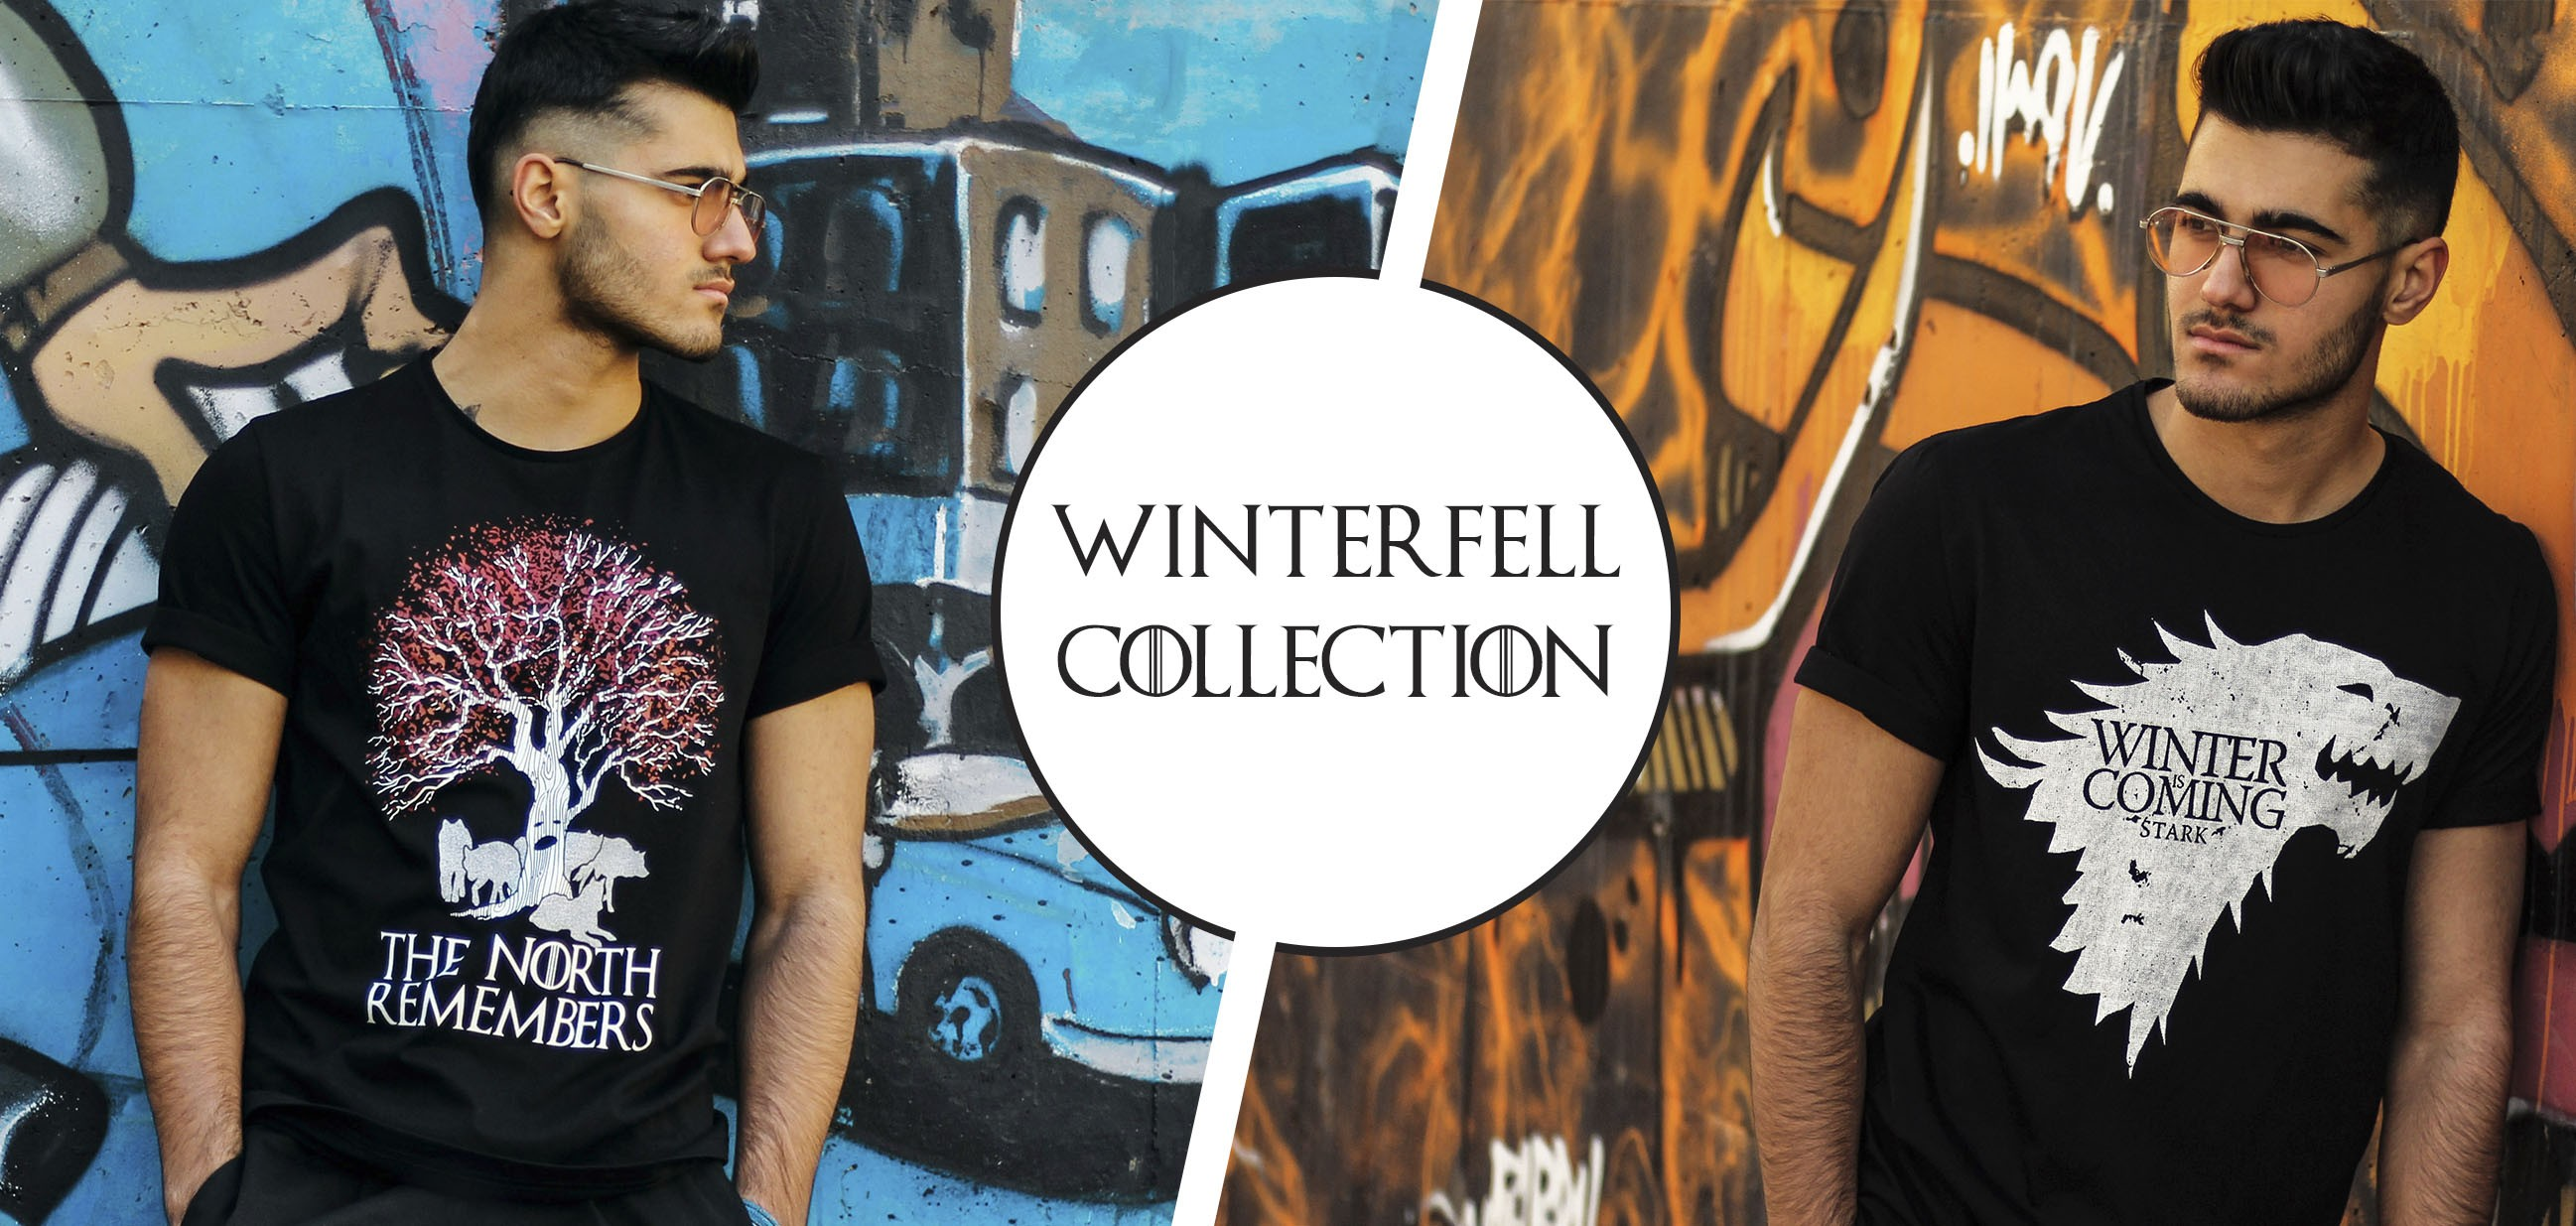 Winterfell Collection